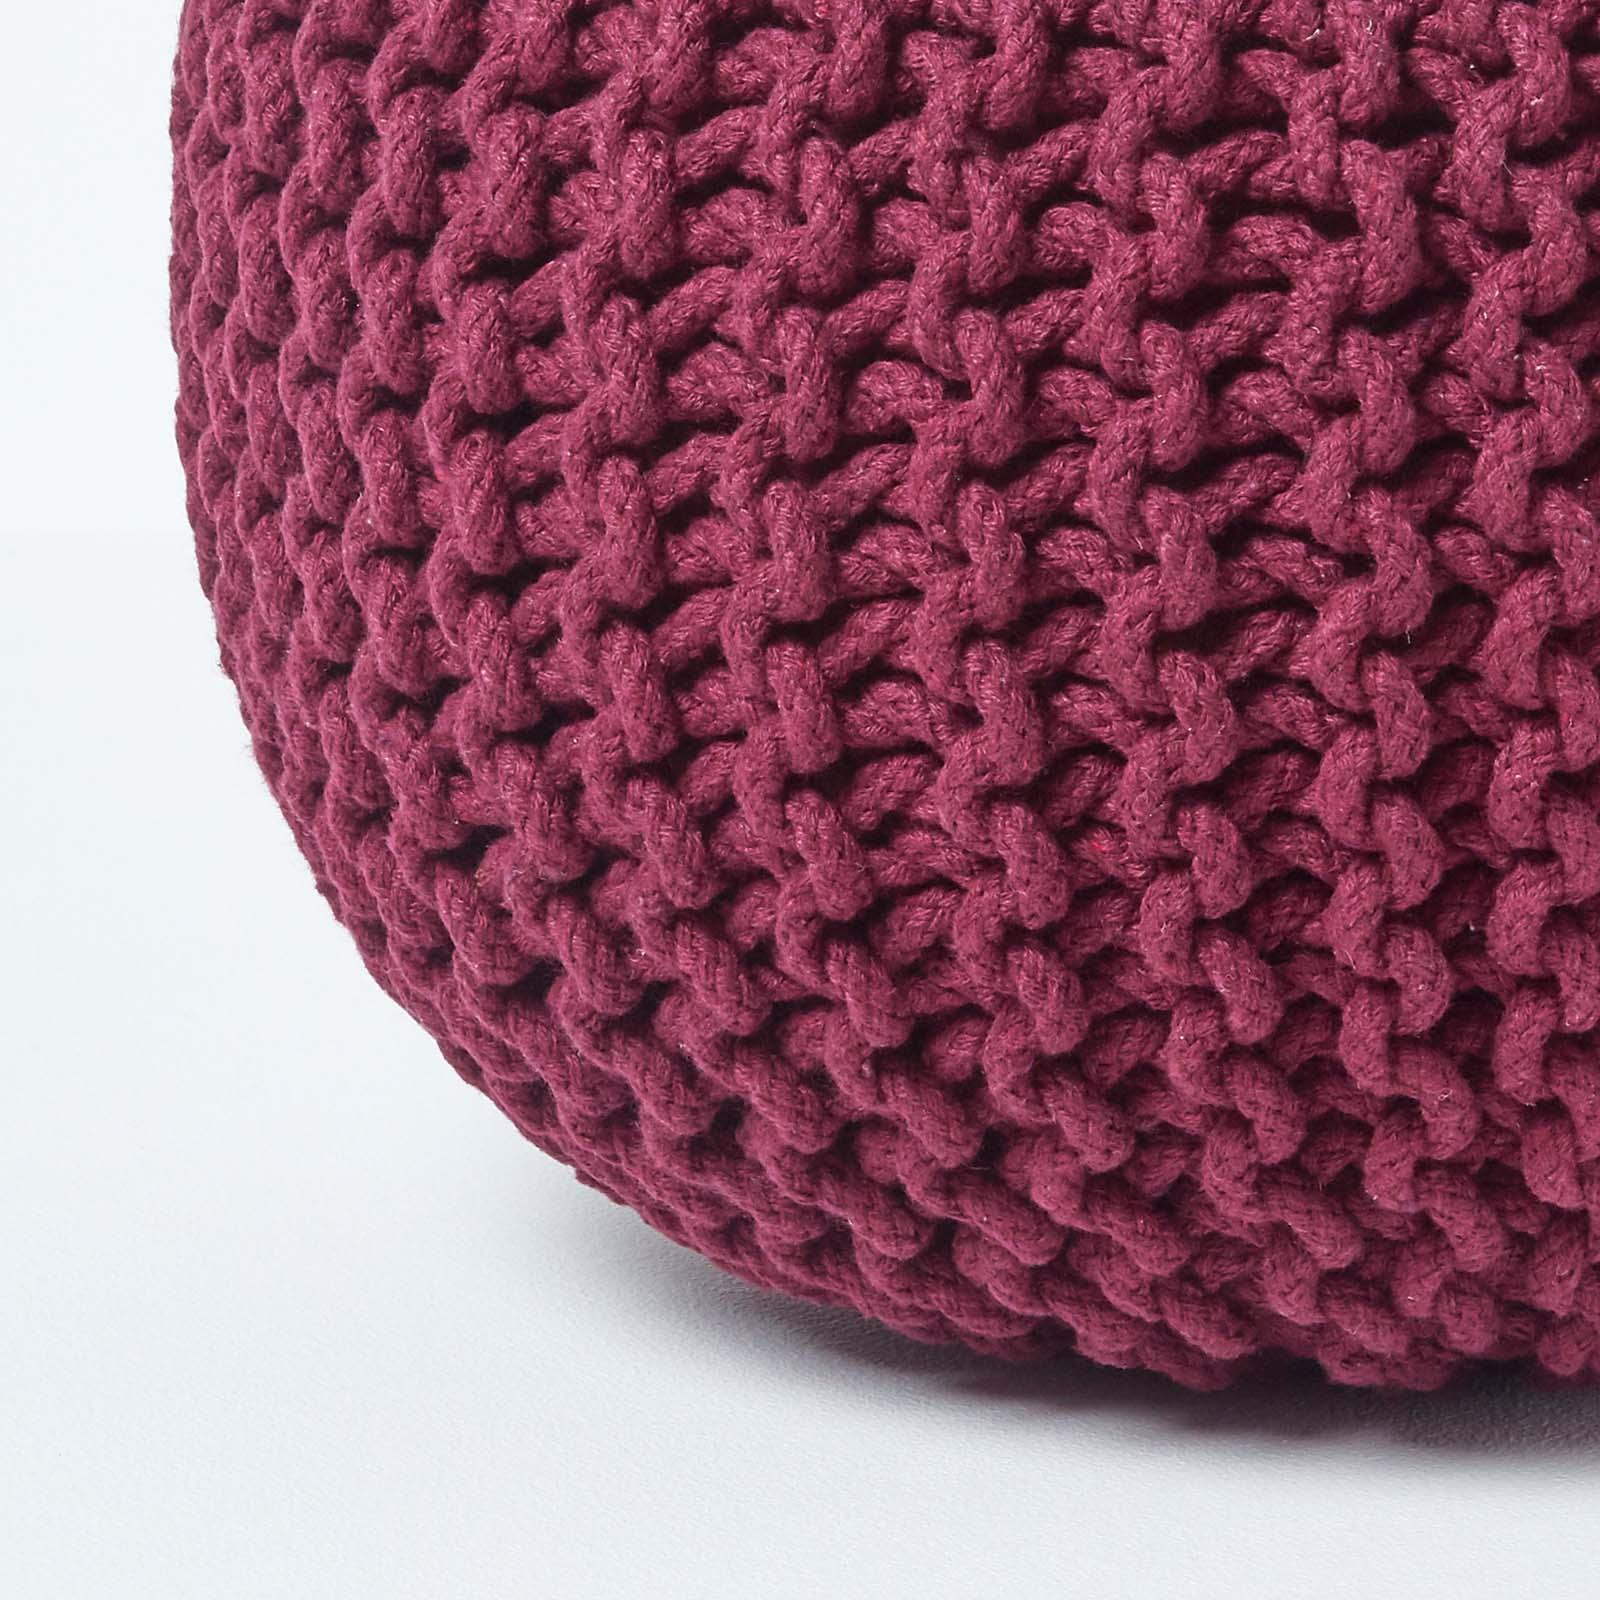 Hand-Knitted-100-Cotton-Pouffes-Round-Sphere-Or-Cube-Square-Chunky-Footstools thumbnail 155